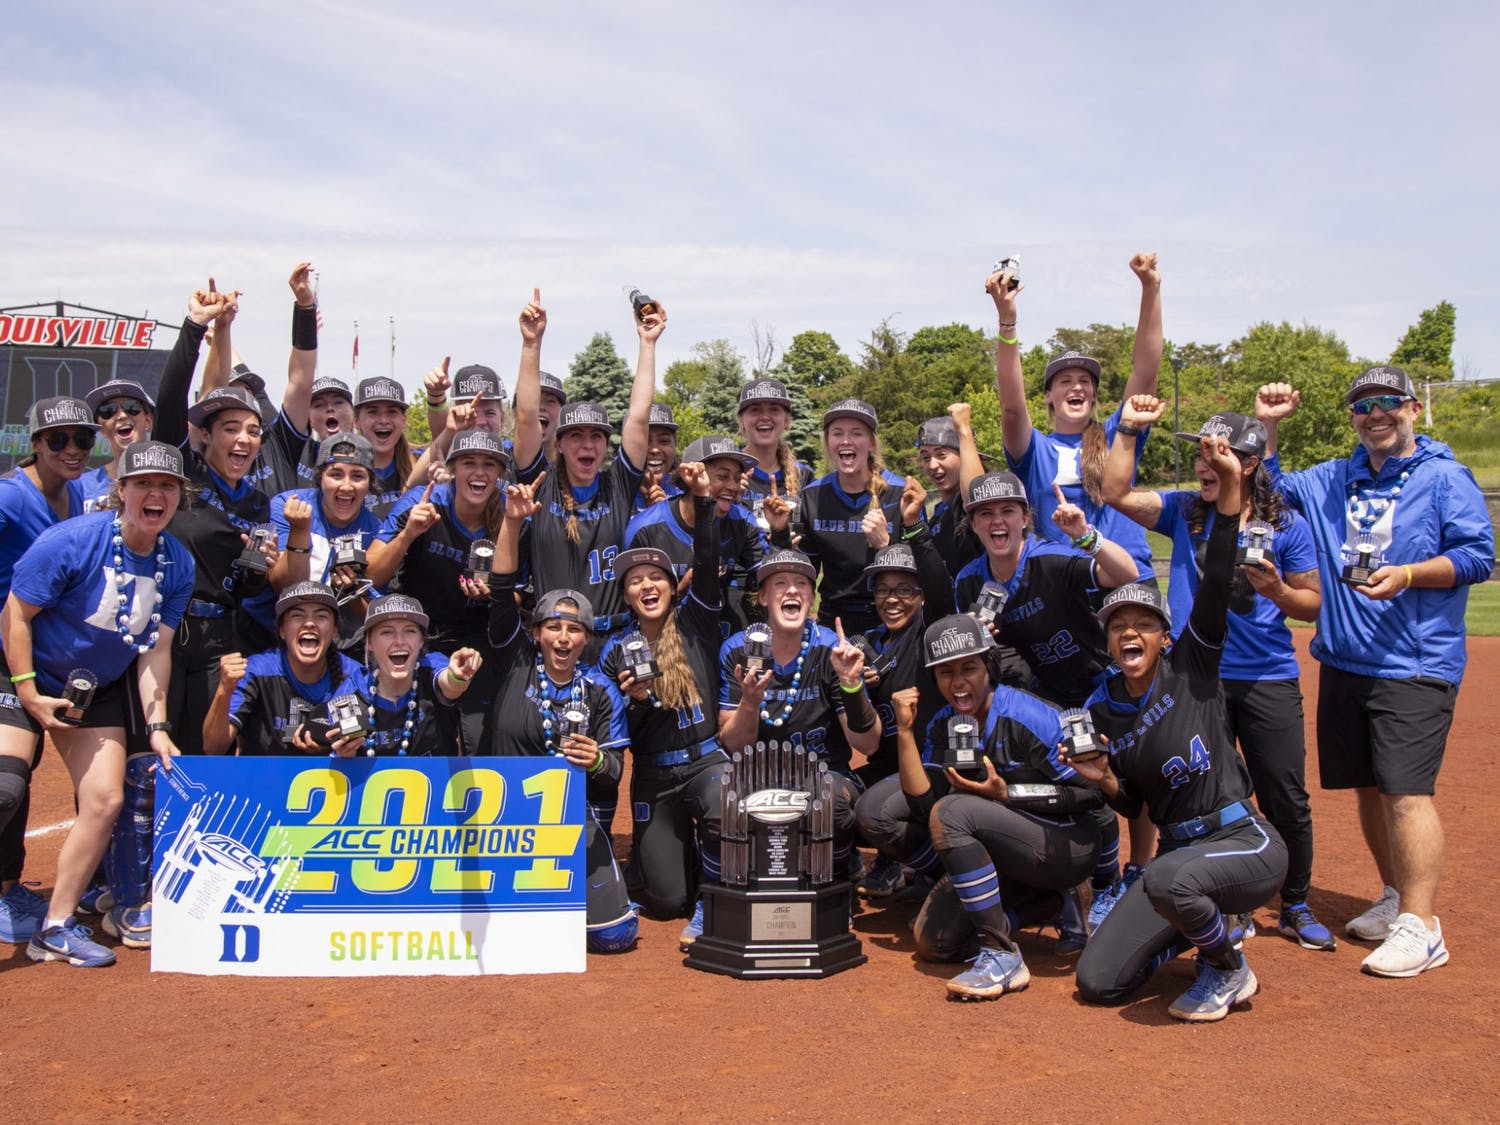 In just its fourth year as a program, Duke took home the ACC Championship.